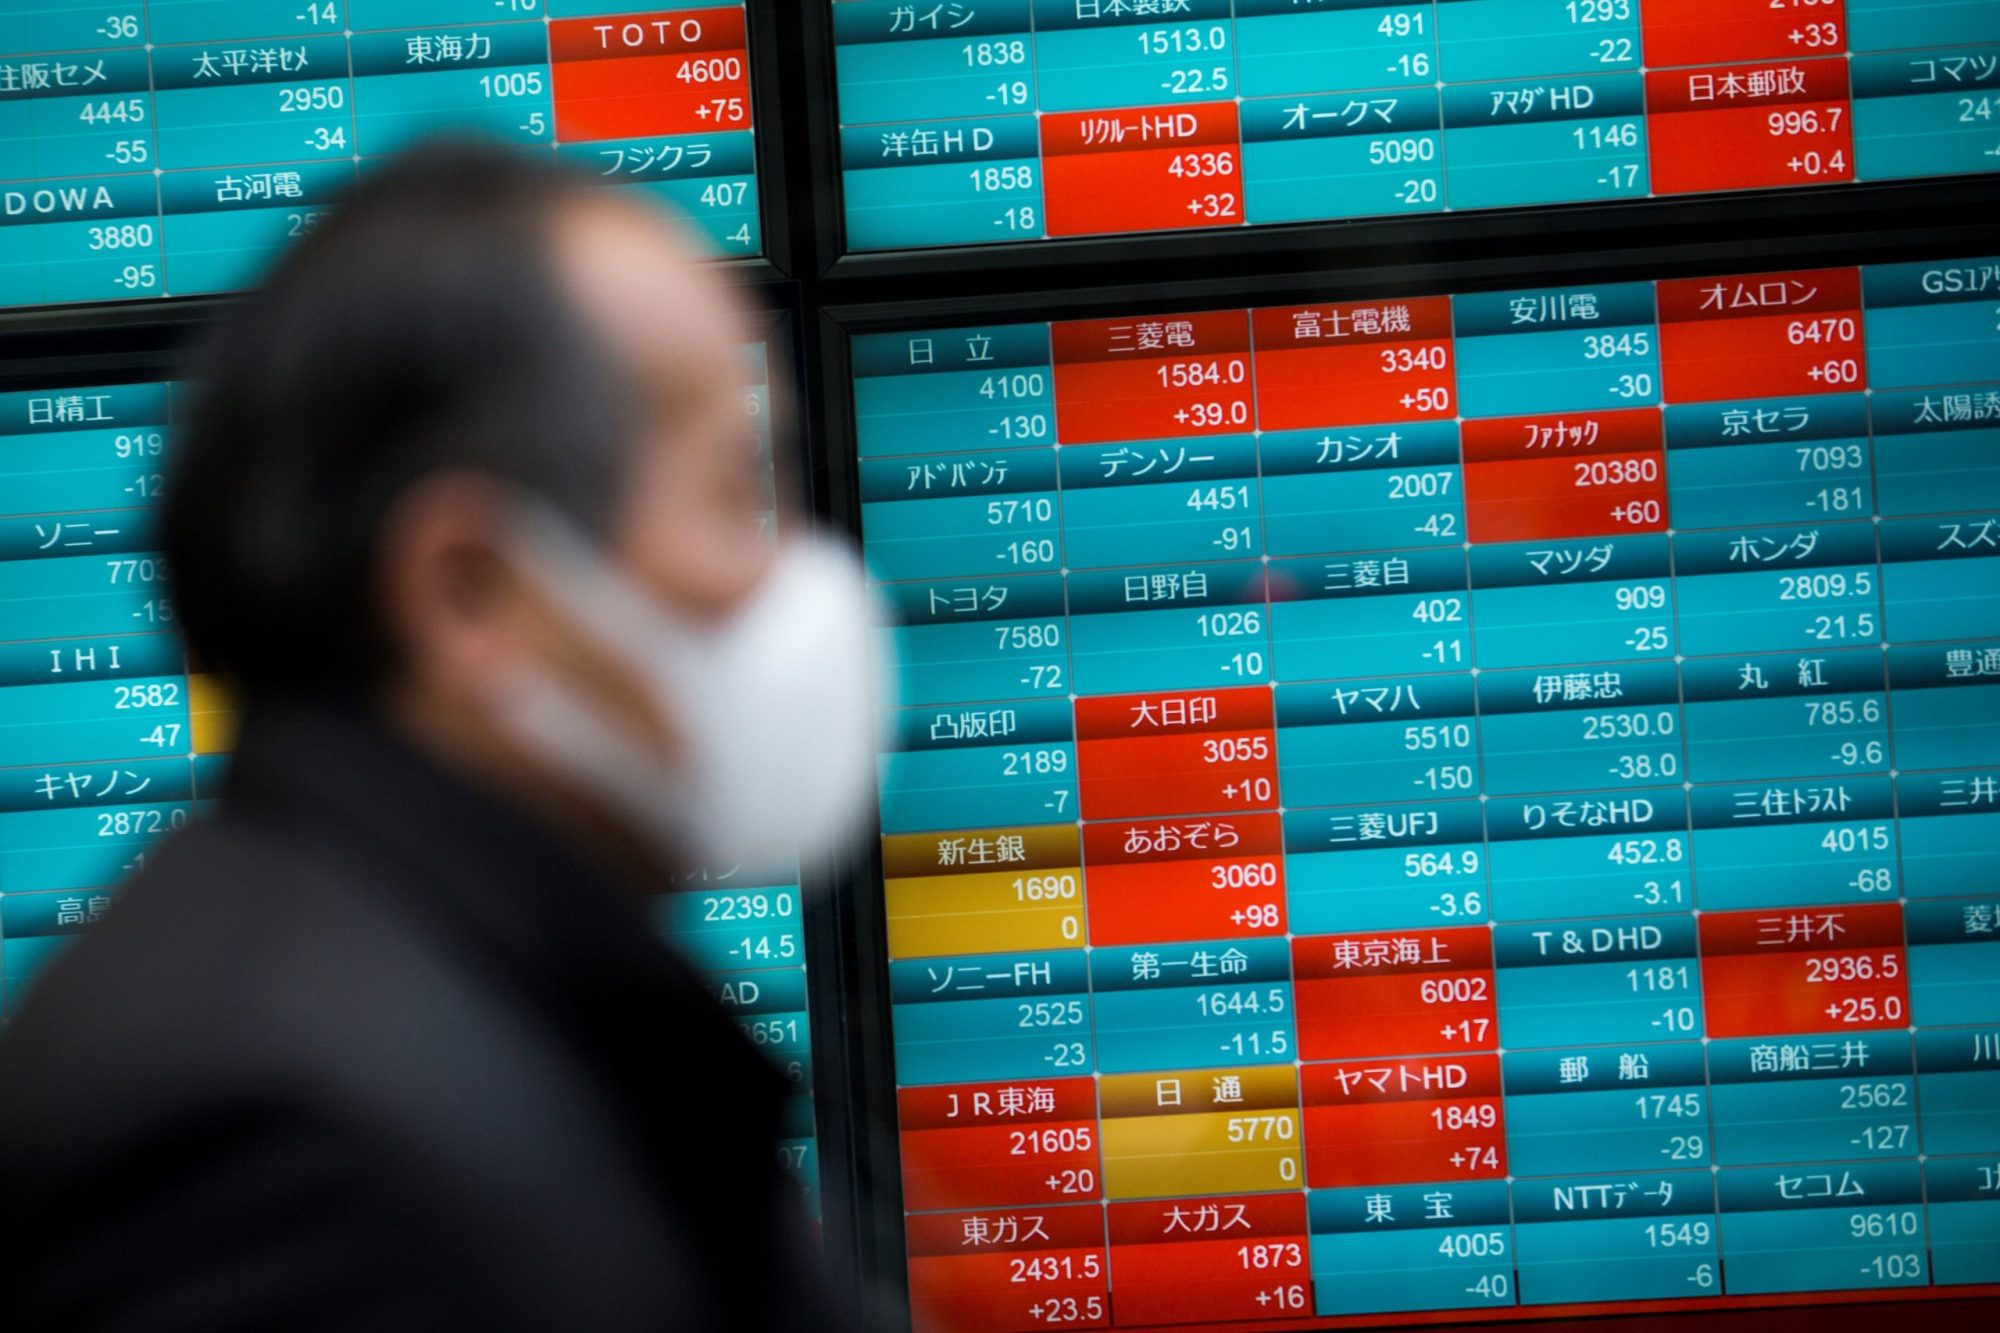 A pedestrian wearing a face mask walks past a stock indicator displaying share prices of the Tokyo Stock Exchange in Tokyo on Feb.3, 2020. (Credit: BEHROUZ MEHRI/AFP via Getty Images)